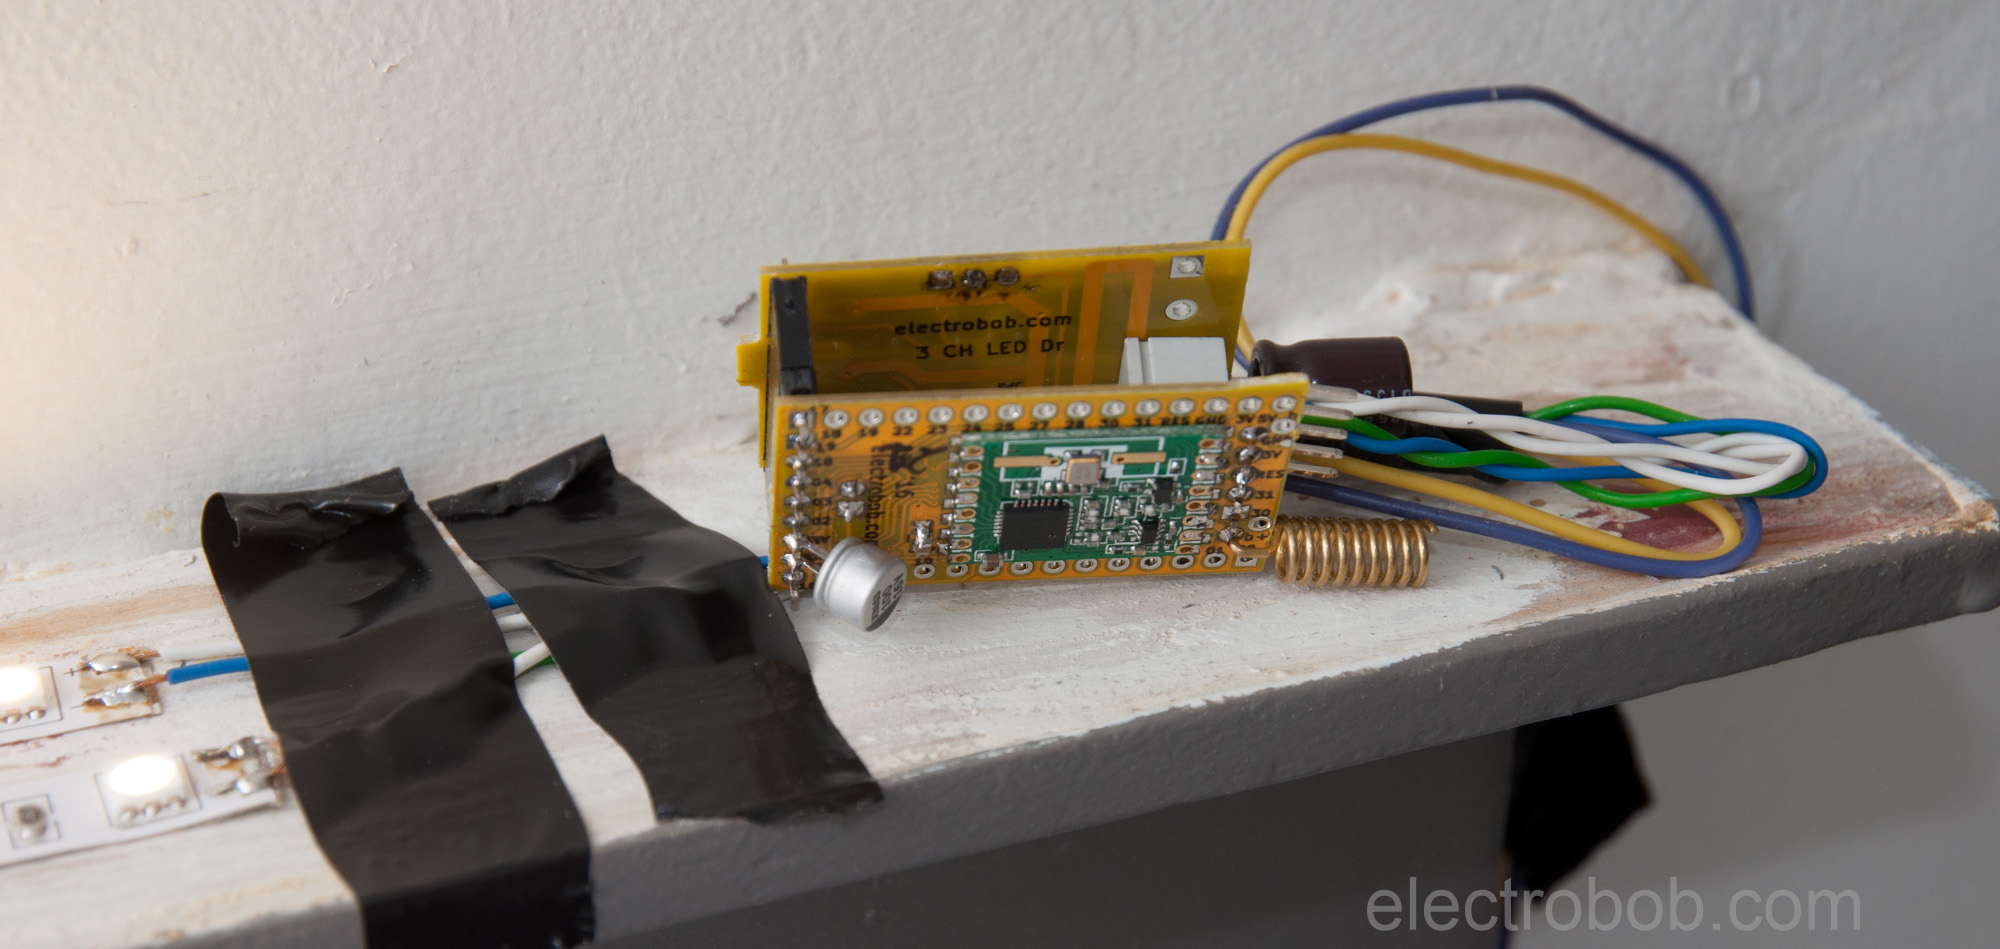 10002 Progress Electro Bob Simple Led Blinking Circuits Eeweb Community To Make Things More Interesting This Module Does Not Have A Motion Sensor Attached It Instead I Made Separate One The Ceiling